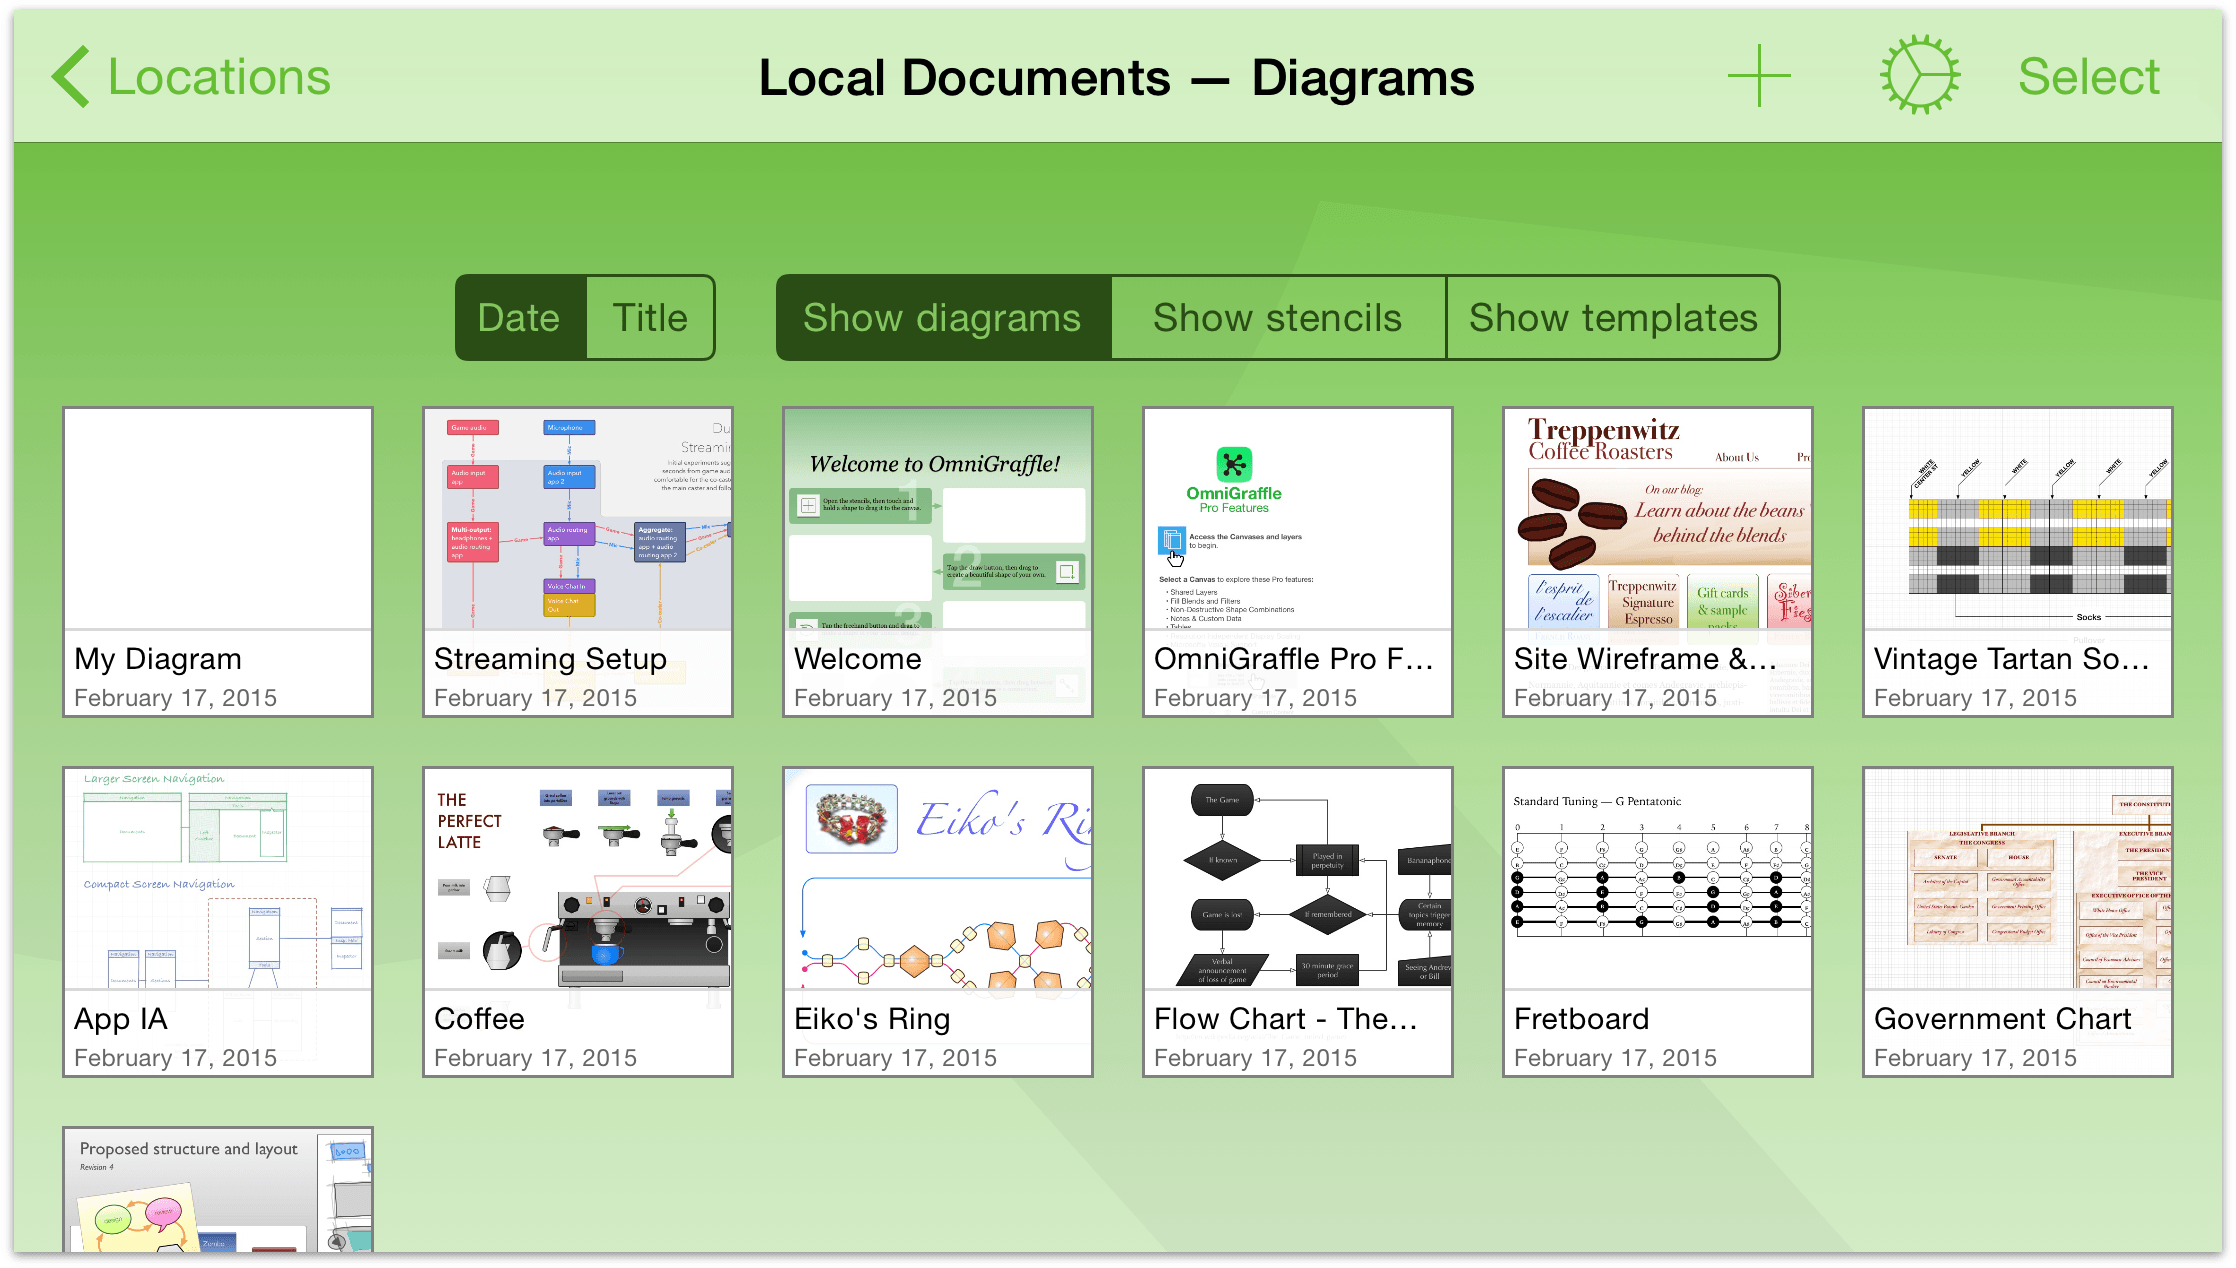 Omnigraffle 27 for ios user manual managing files with the pull down on the screen to find the document organizer ccuart Images